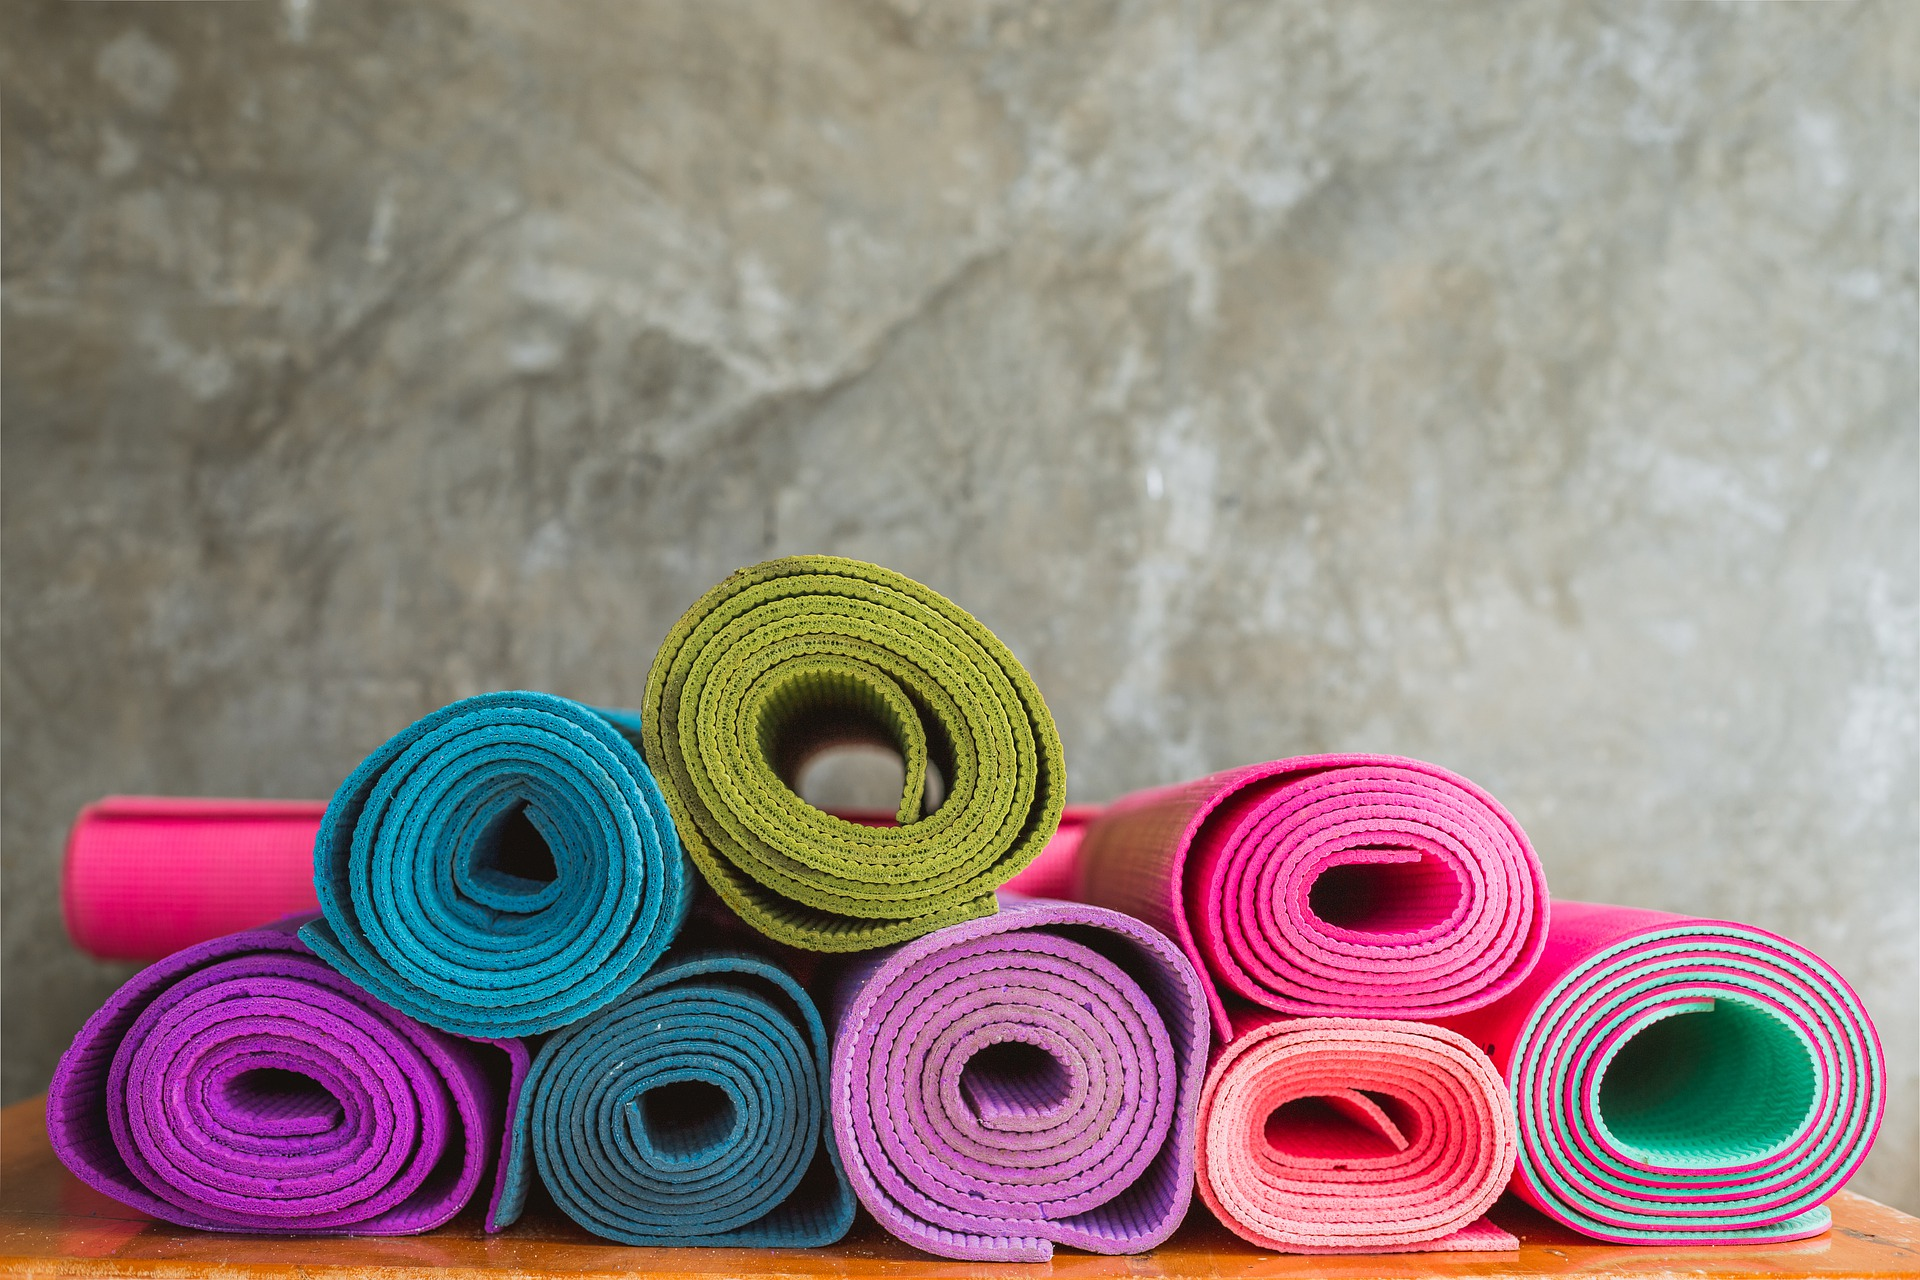 Pelvic Floor Physical Therapy: How Luna Restores Health